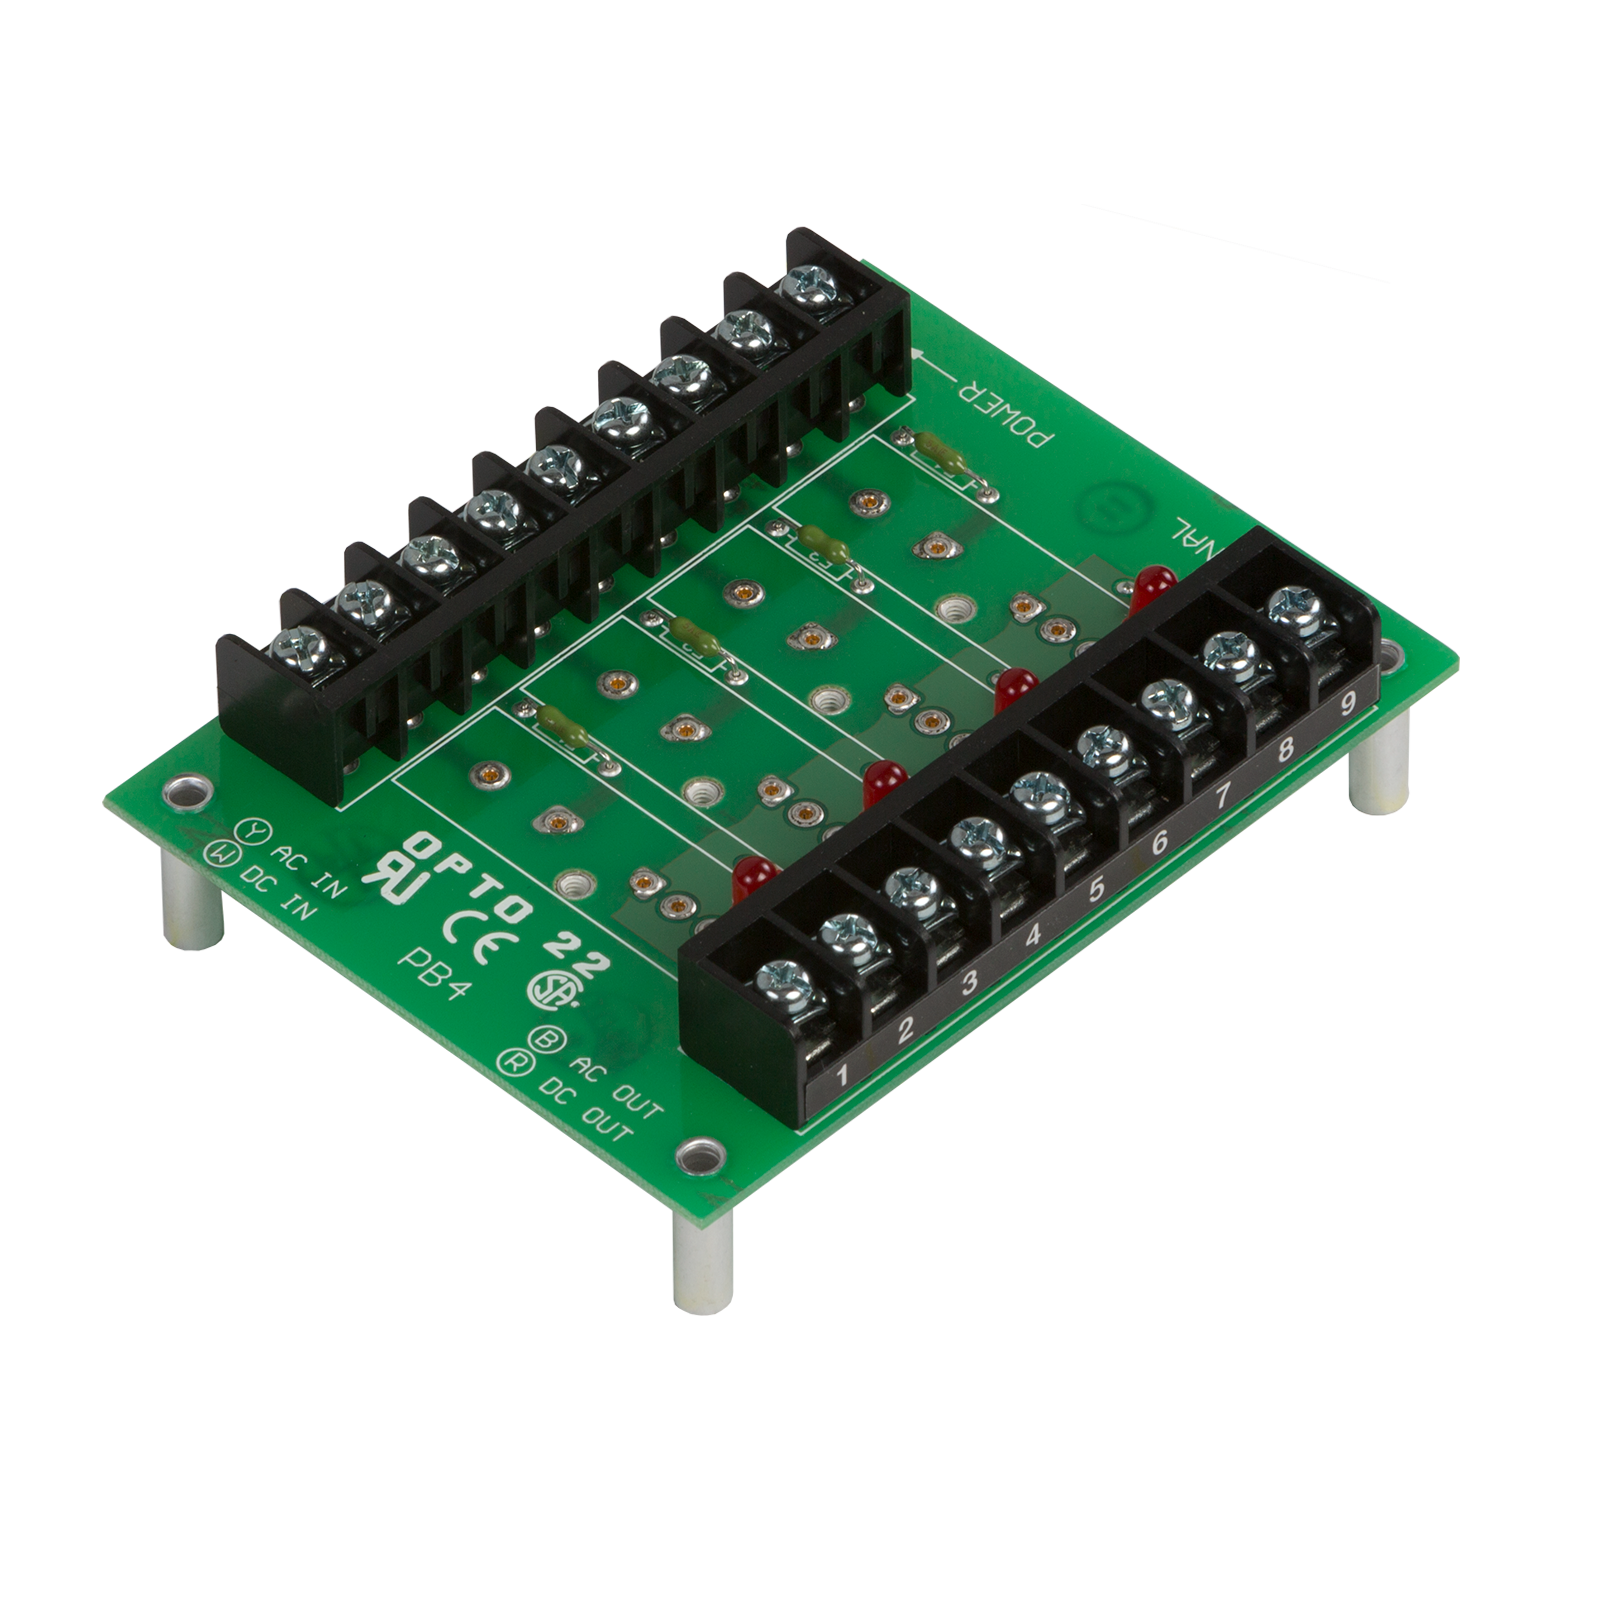 Opto 22 Wiring Diagram Todays Cbr 250 Opto22 Pb4 G1 4 Channel I O Module Rack With 2 Barrier Strips Durant